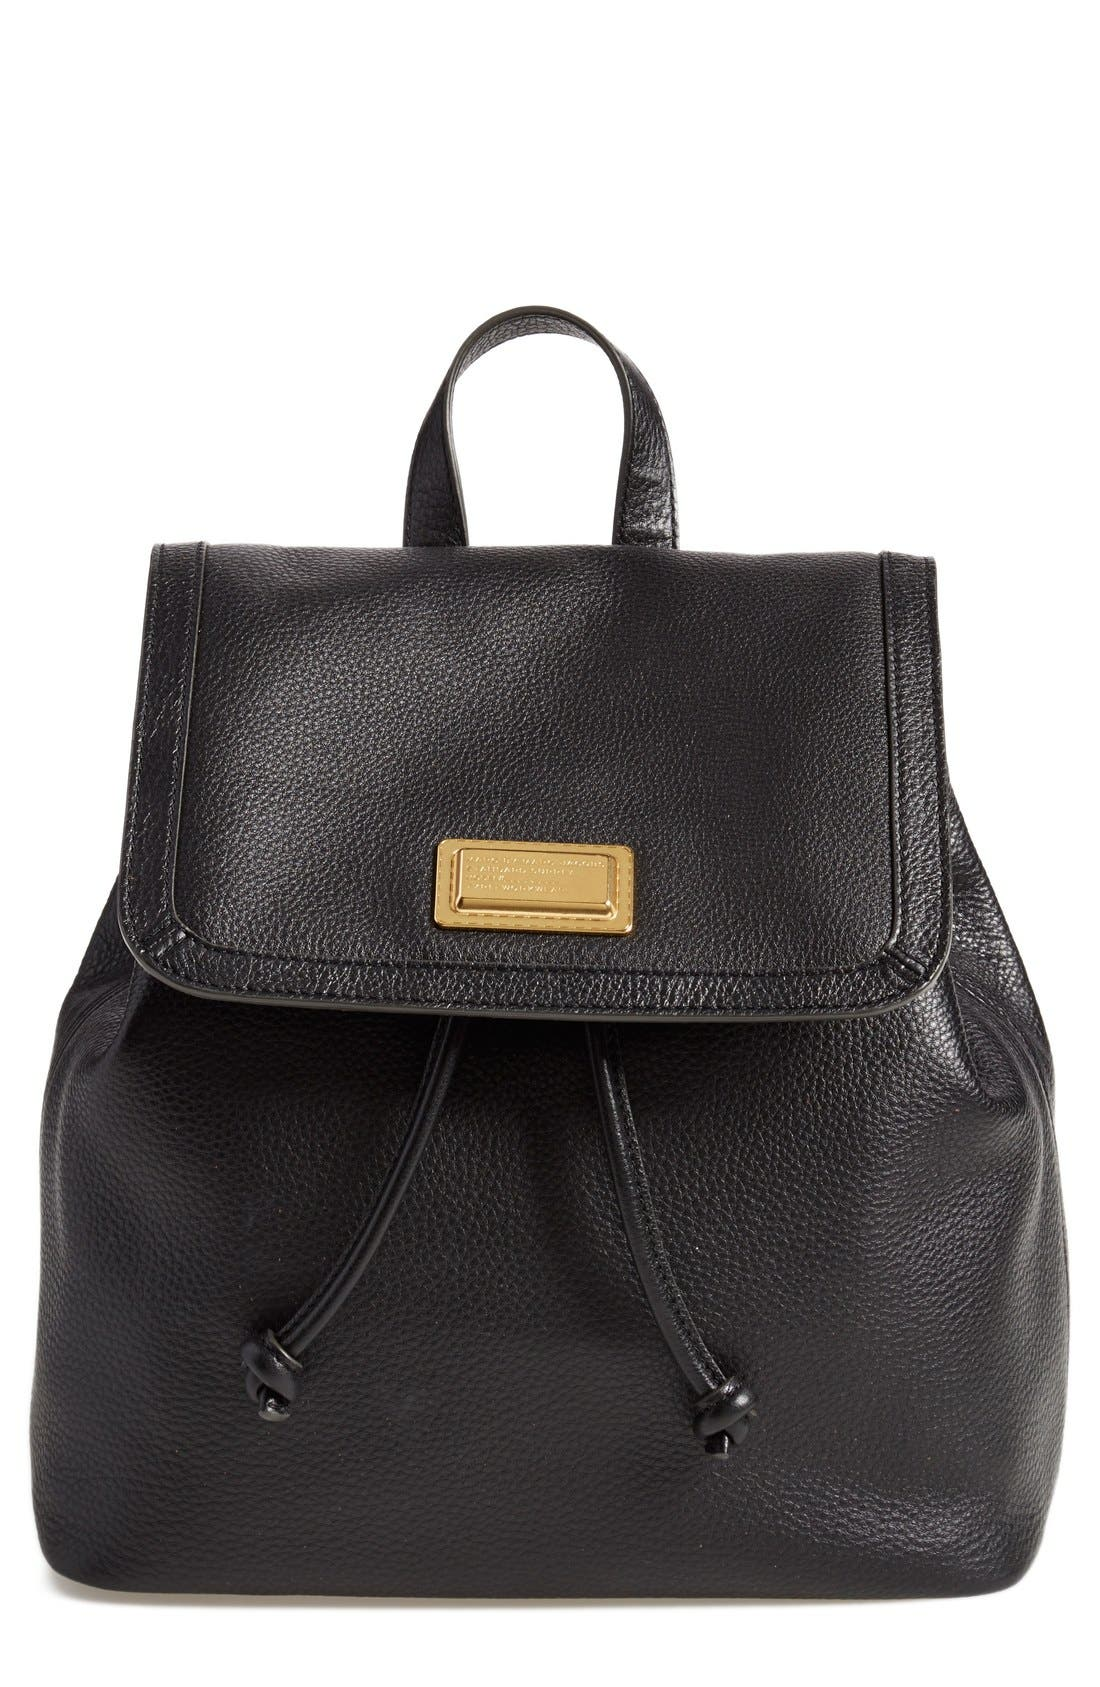 MARC BY MARC JACOBS 'Take Your Marc' Leather Backpack, Main, color, 001